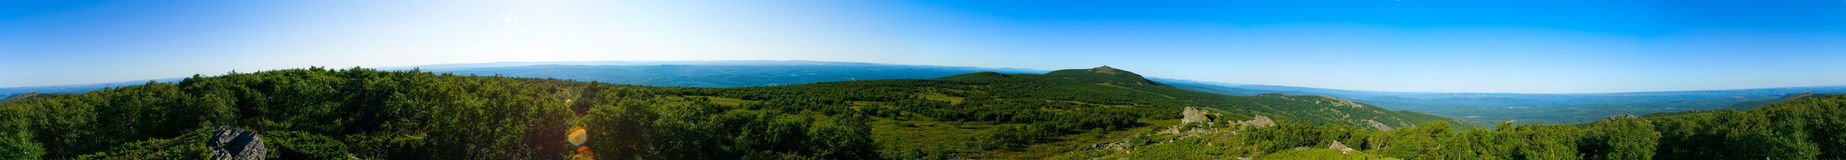 Highest peak of south Ural Stock Photography